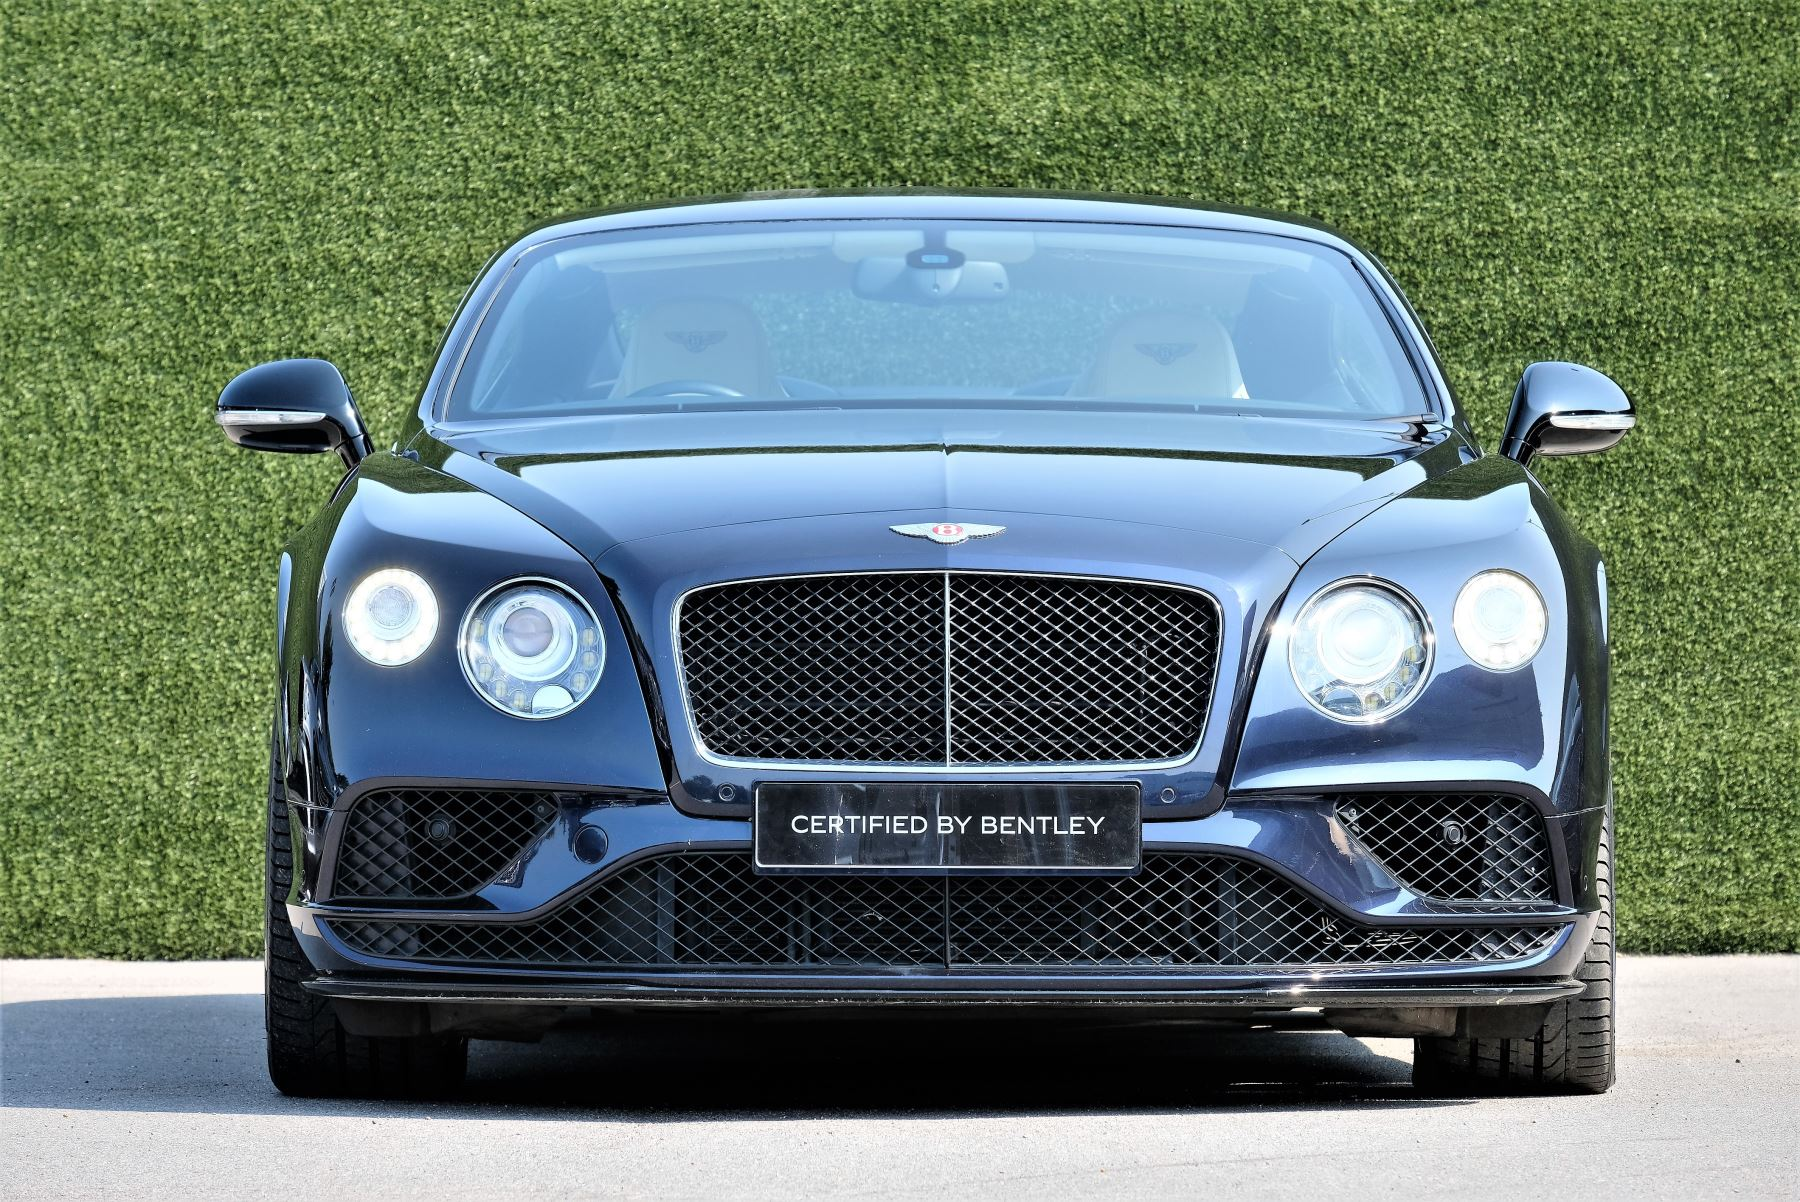 Bentley Continental GT V8 S Coupe 4.0 V8 S 2dr Auto Mulliner Driving Specification image 3